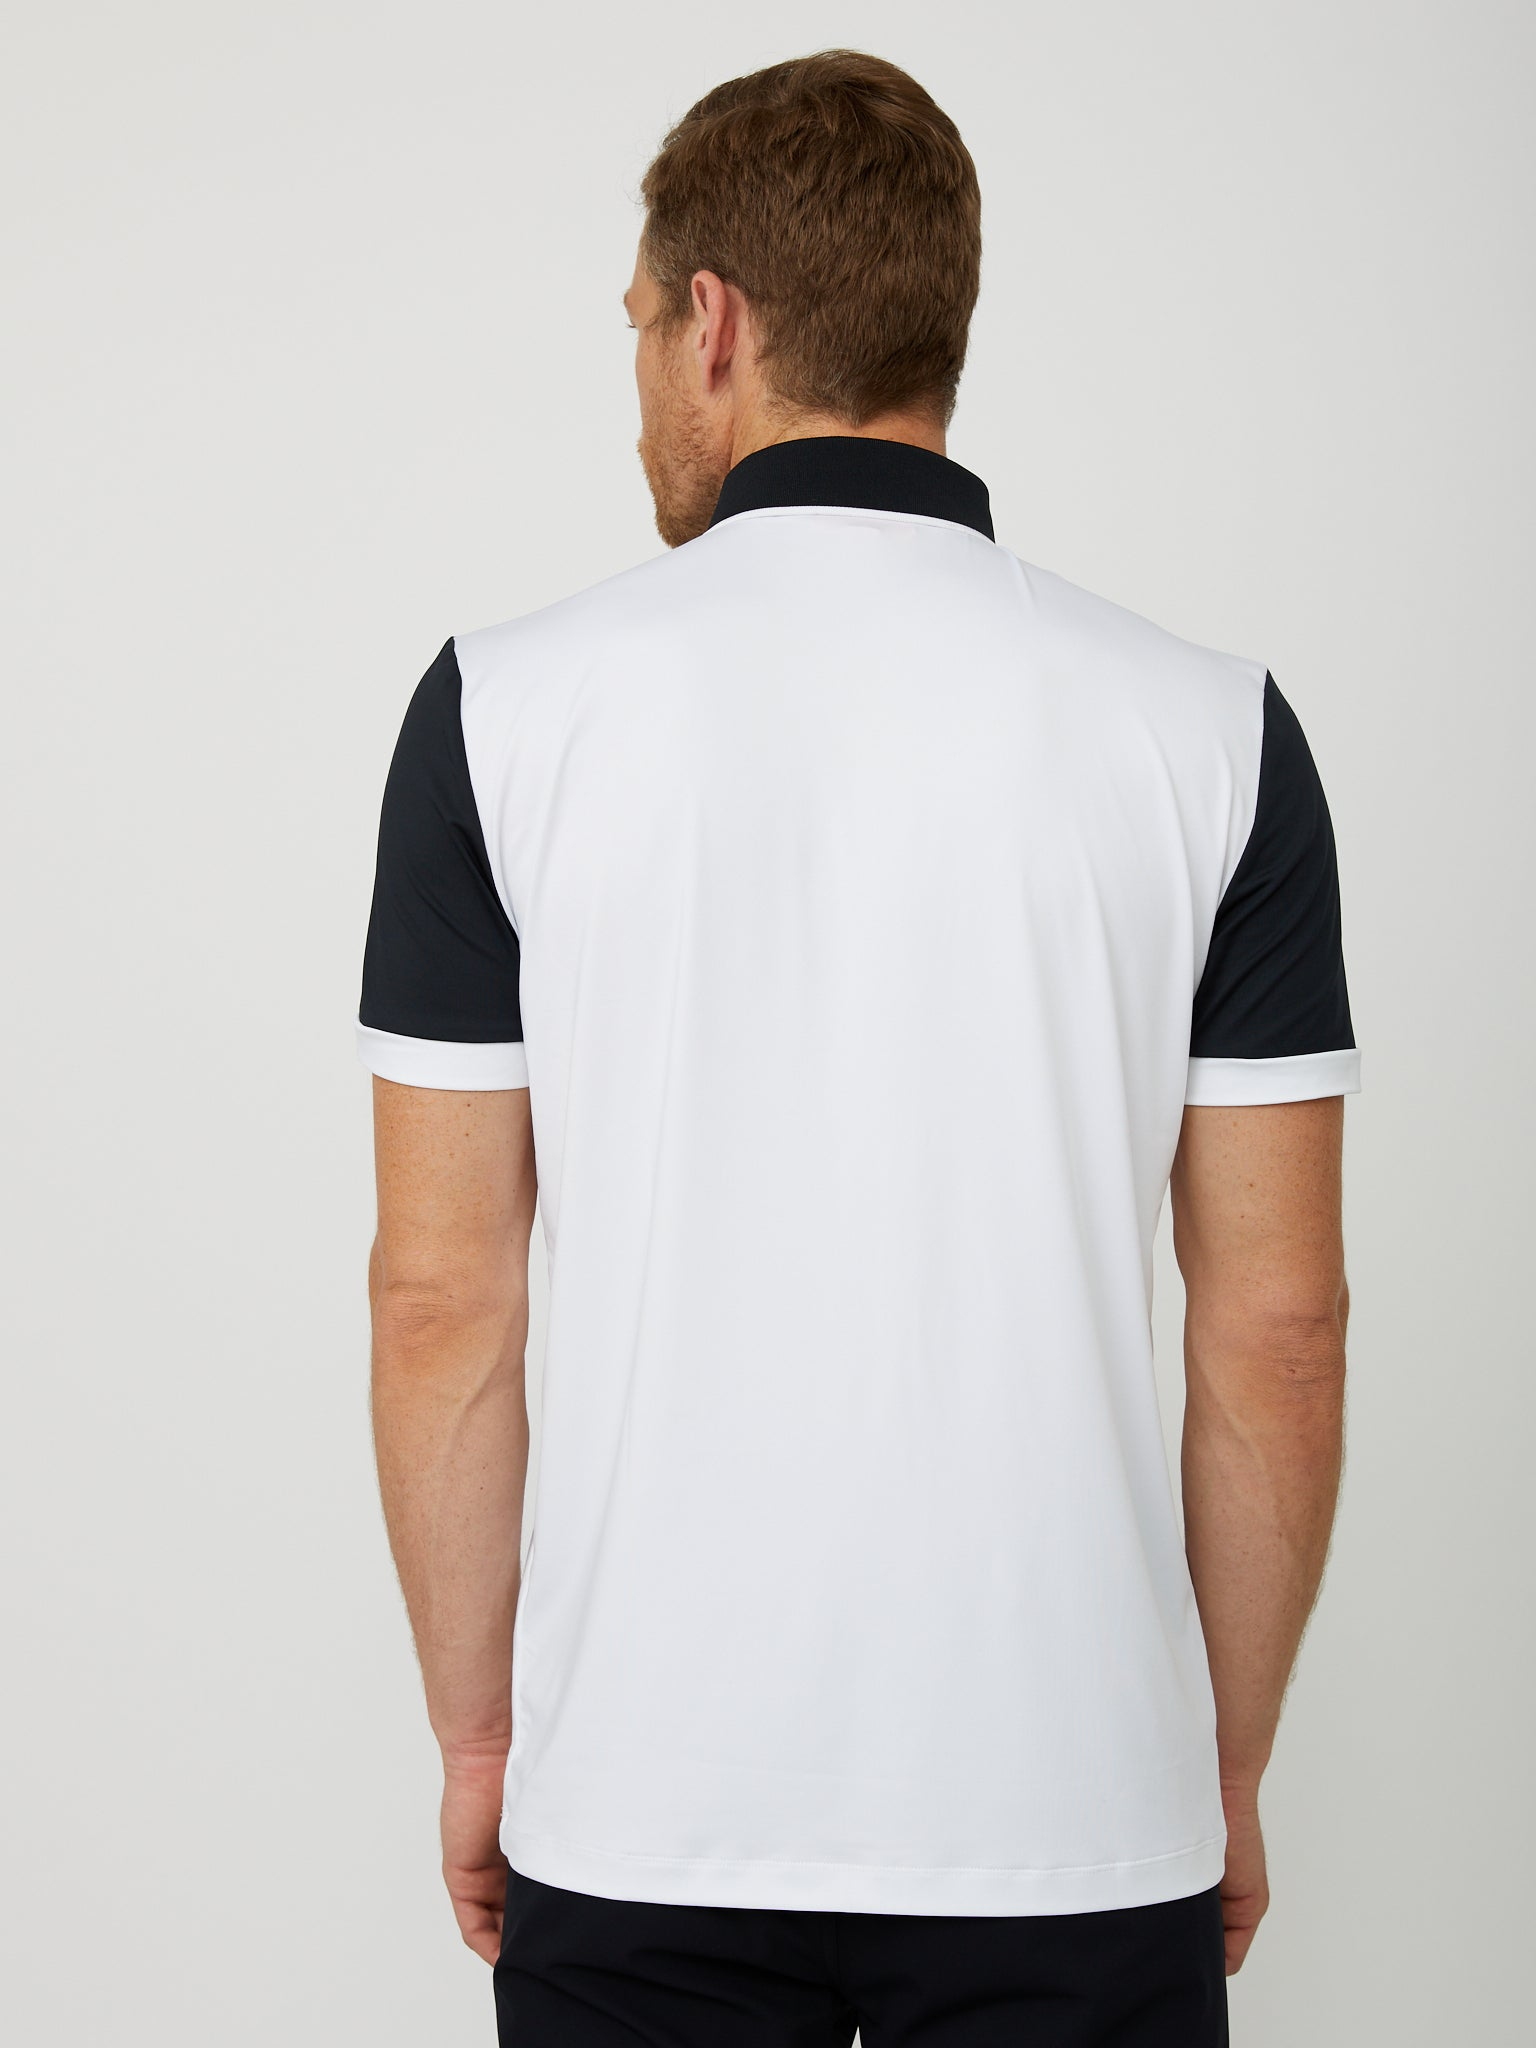 Lloyd Polo in White/Black